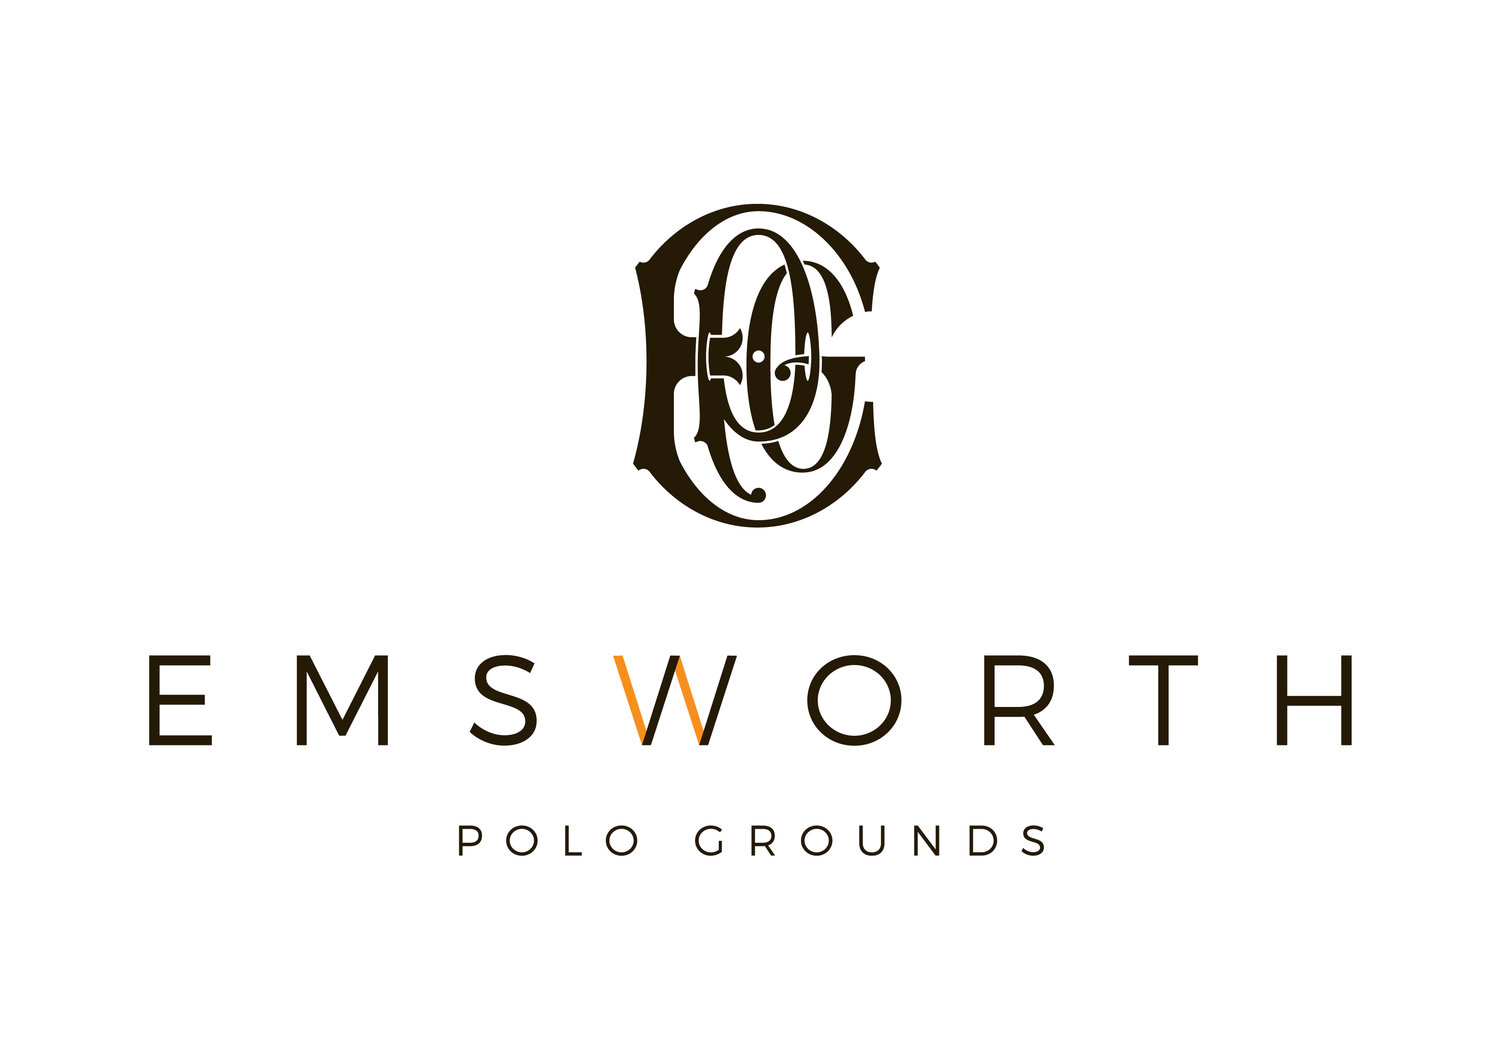 Emsworth Polo Grounds: Private Hire Venue in Windsor, Berkshire